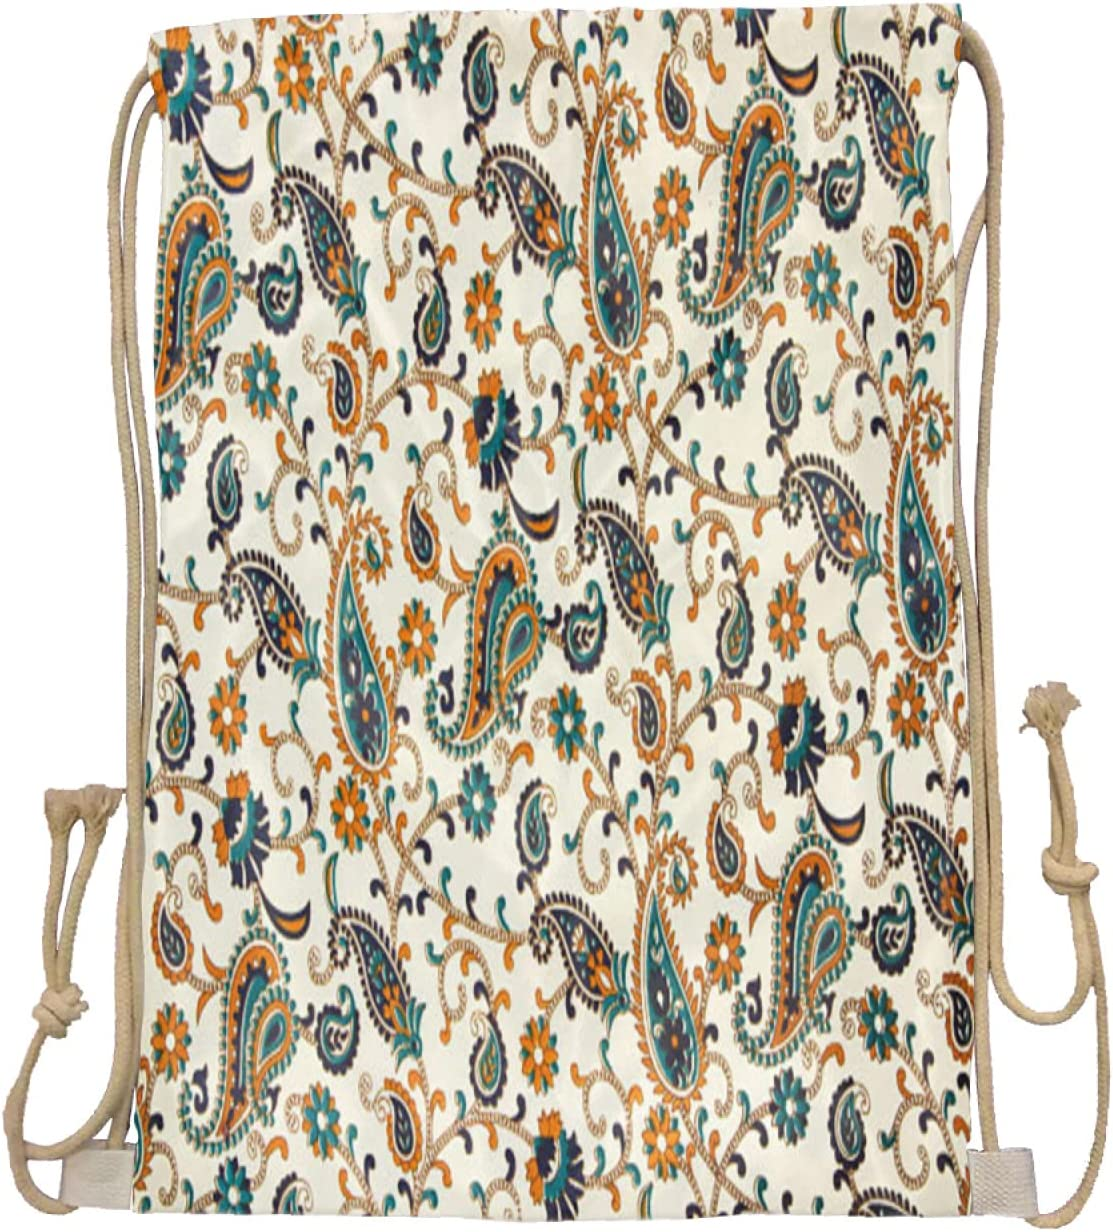 Drawstring Factory outlet backpack-bric with pattern bac capacity Nashville-Davidson Mall picture-large